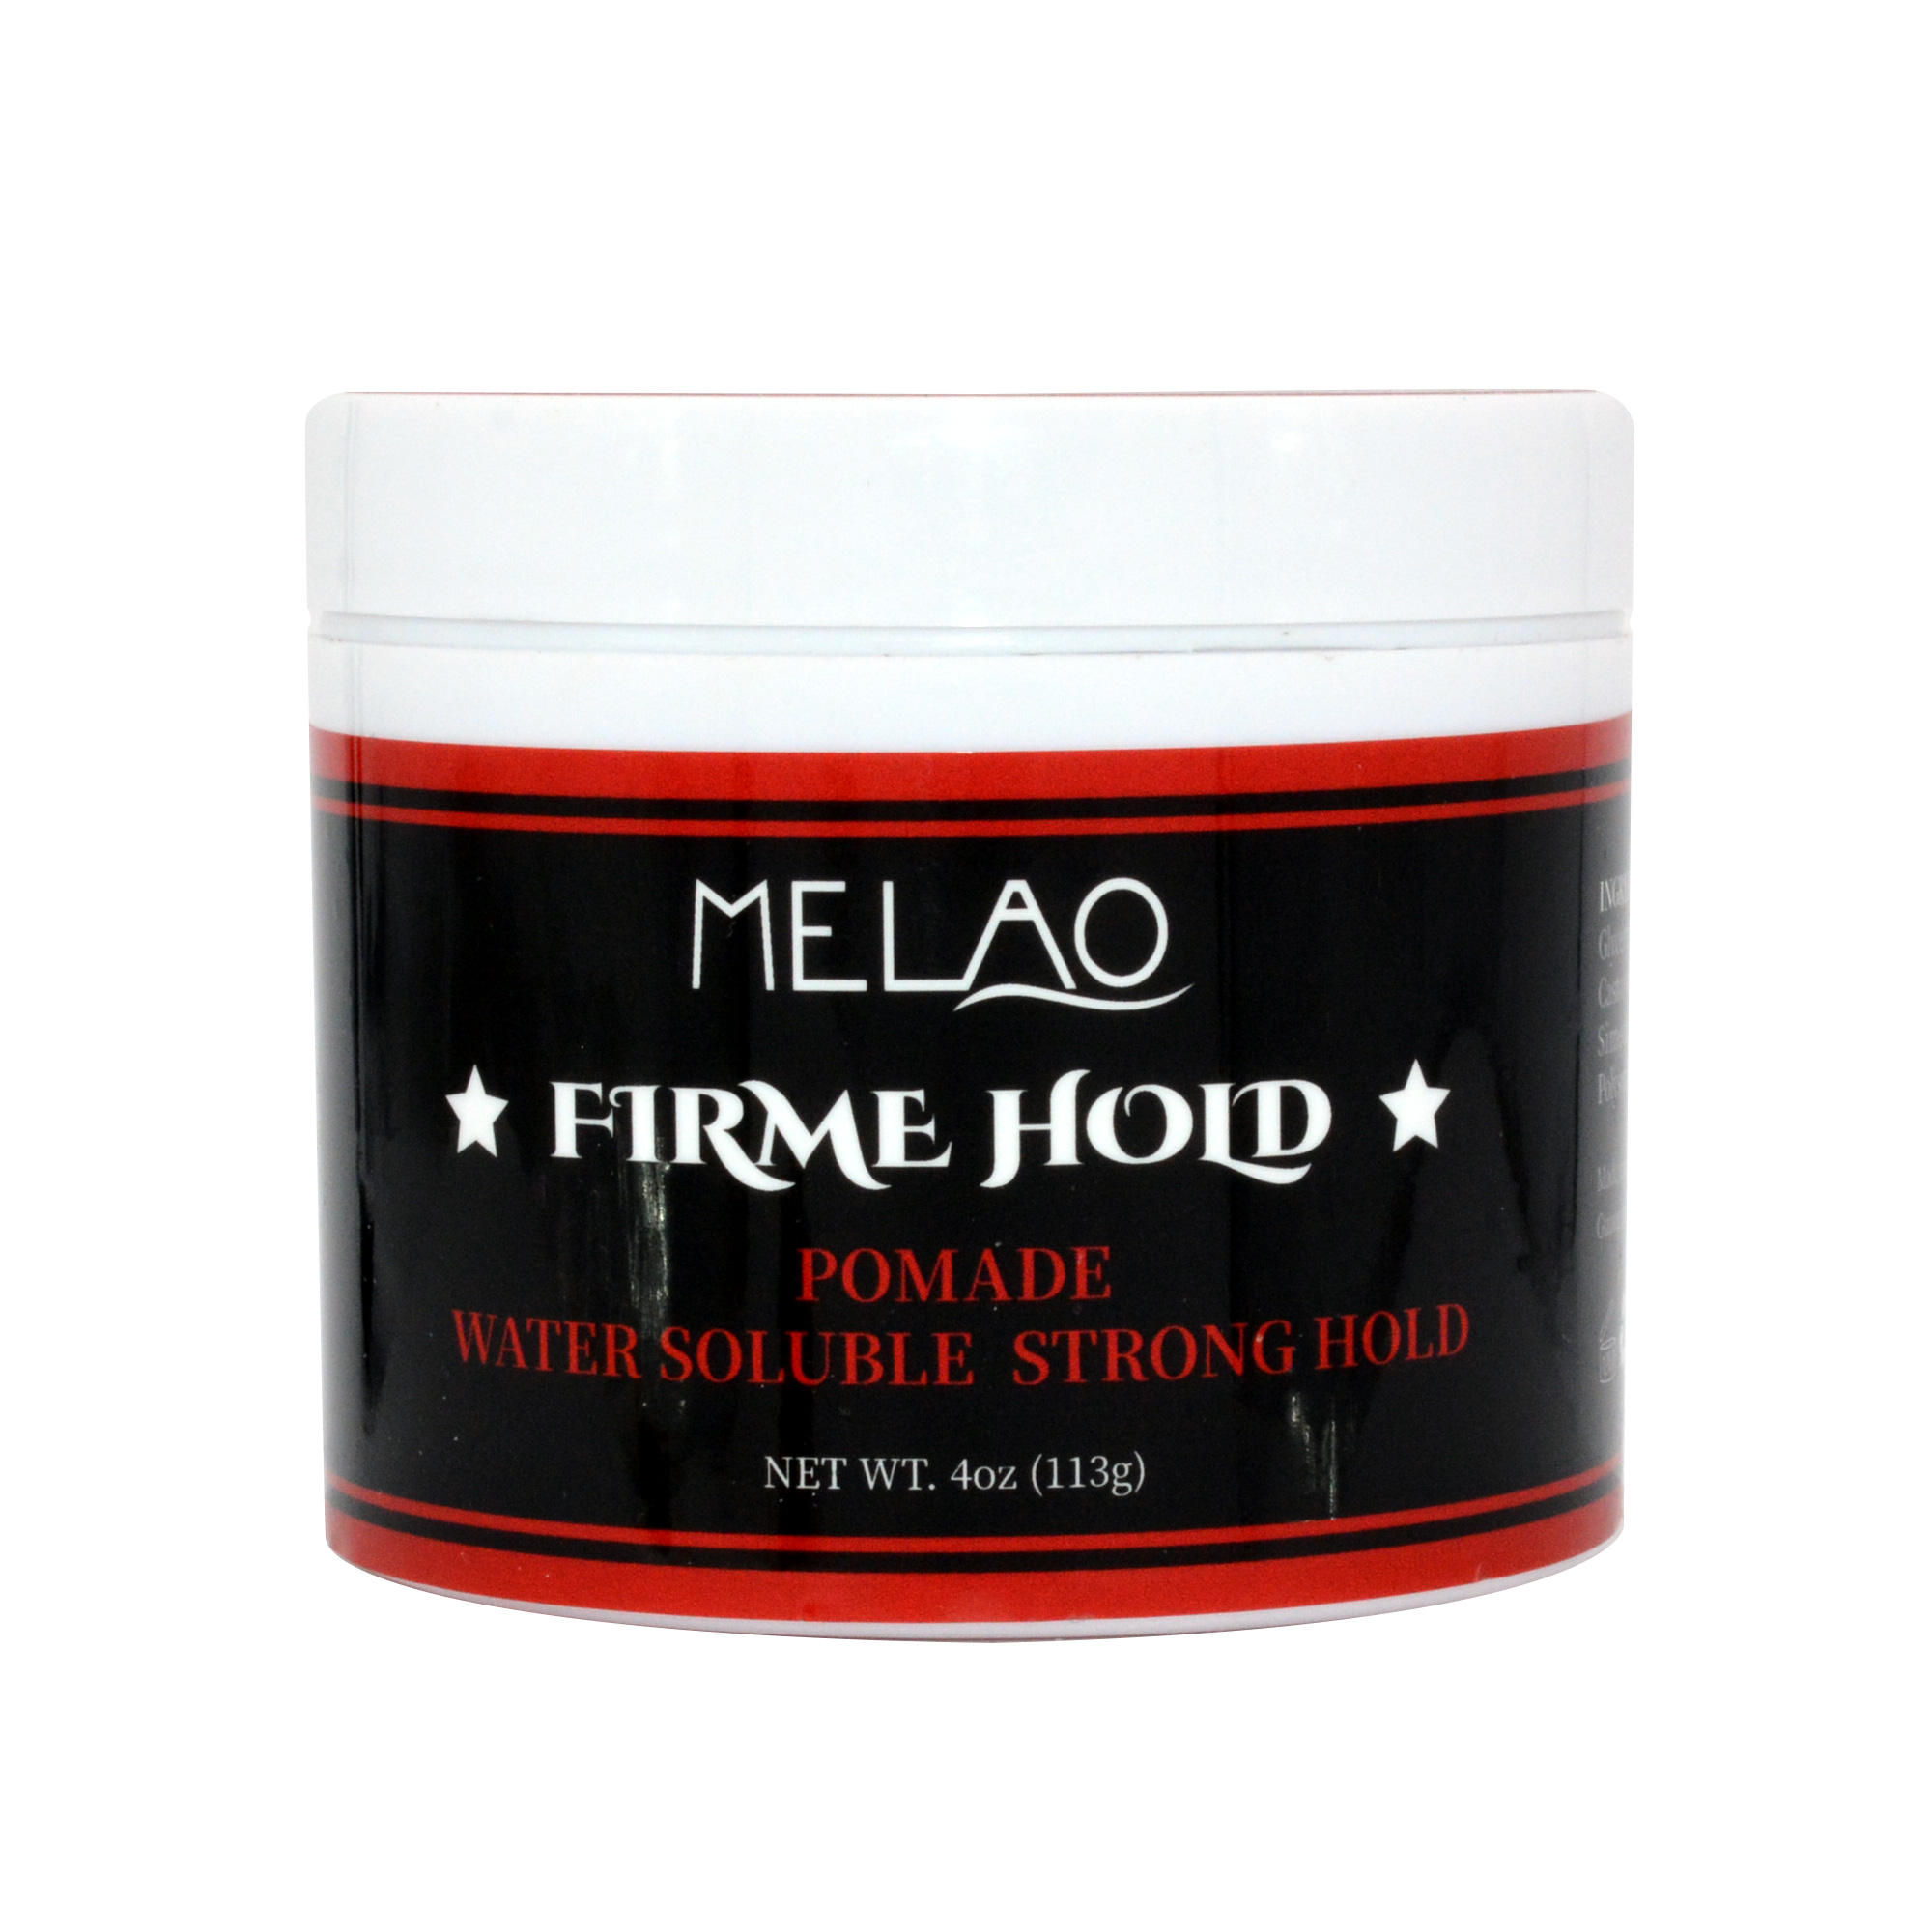 strong hold glow in the dark private label for growth women custom own halal with vitamin e organic Hair wax pomade